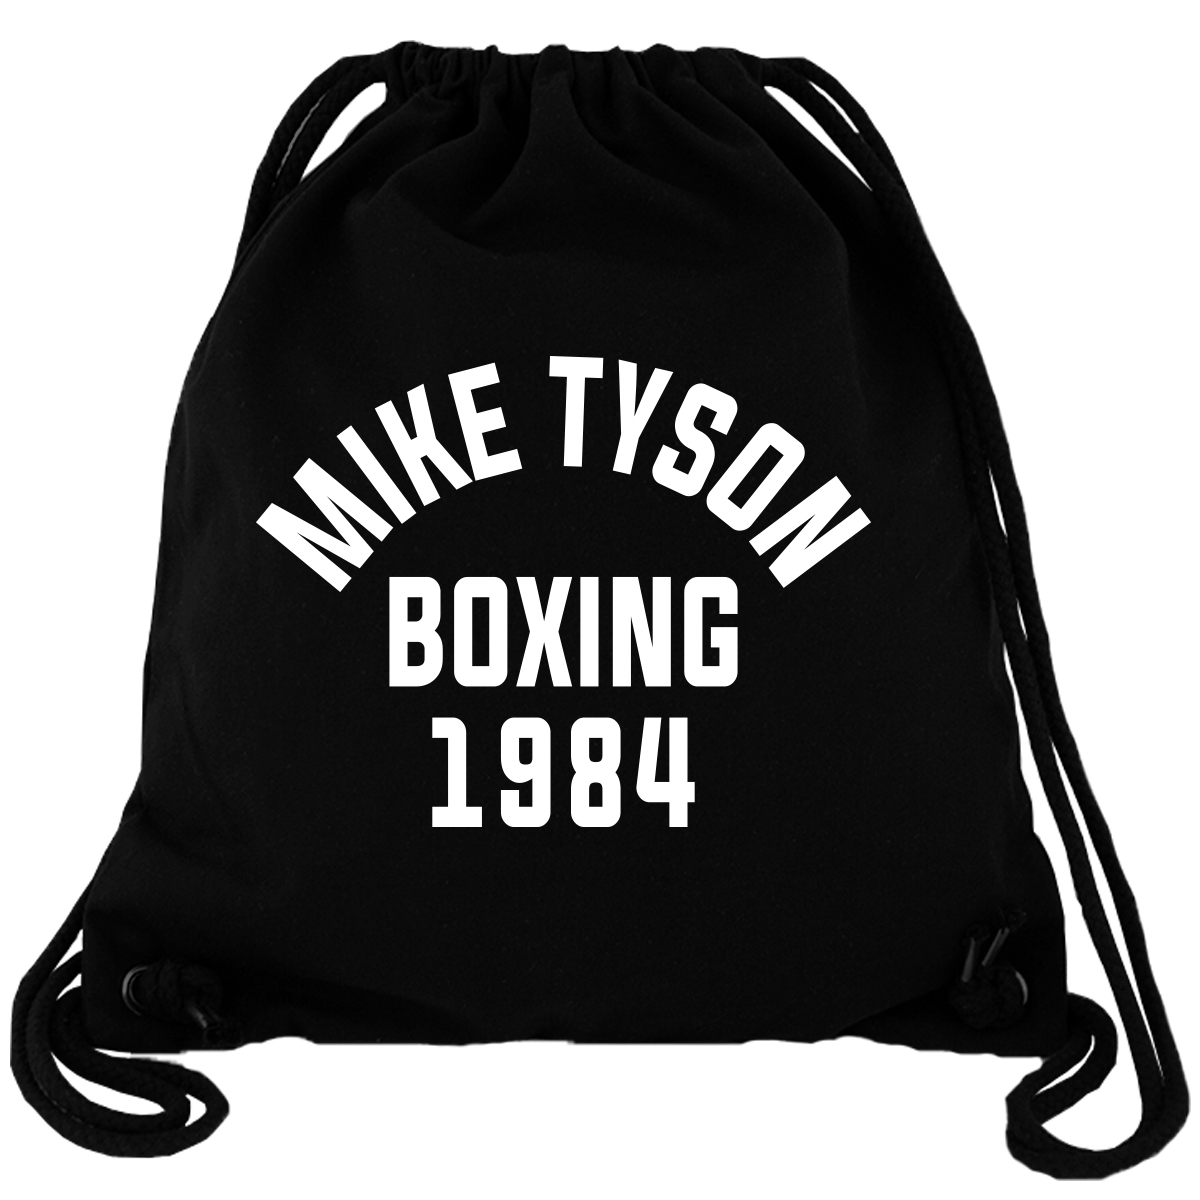 Mike Tyson Boxing 1984 - Gym Bag Turnbeutel